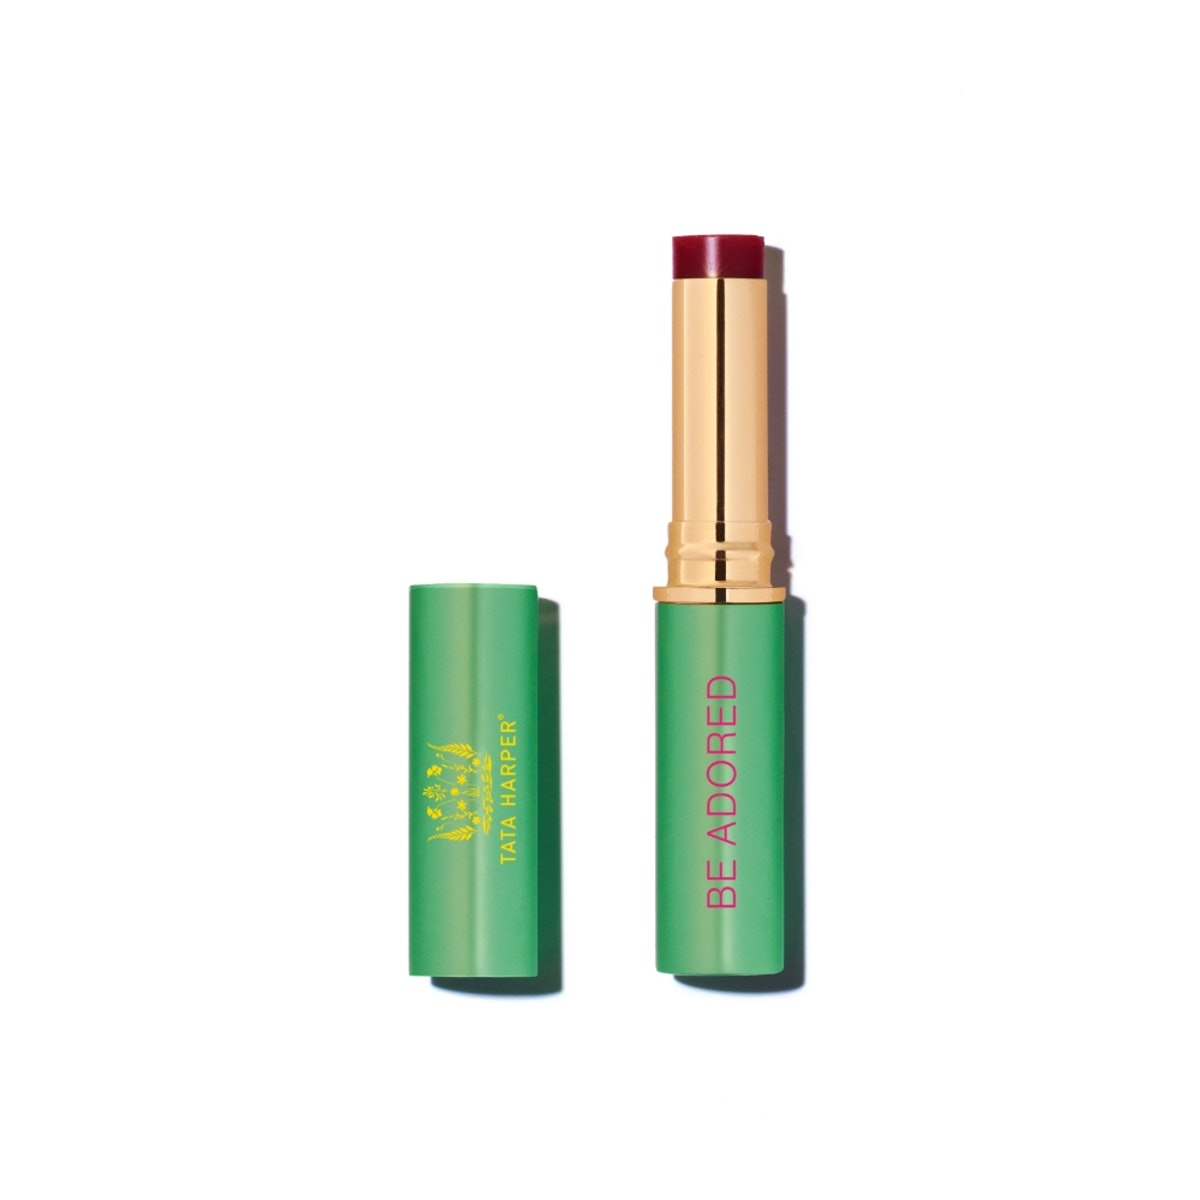 Be Adored Tinted Anti-Aging Lip Treatment